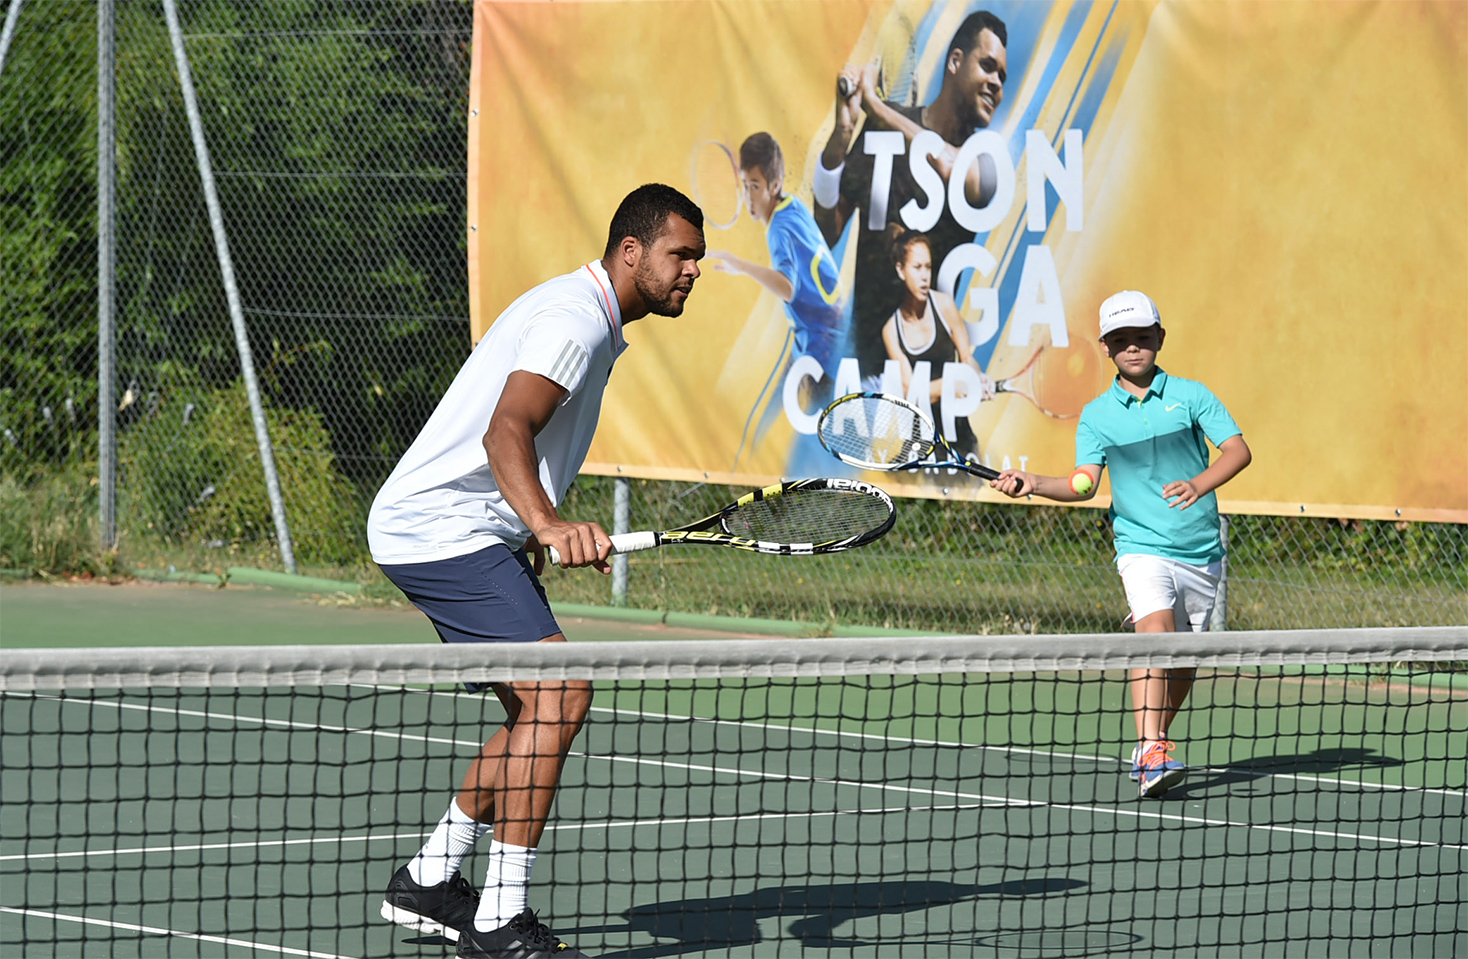 Tsonga playing tennis at his Tsonga camp behind the key visual with a kid in Lyon